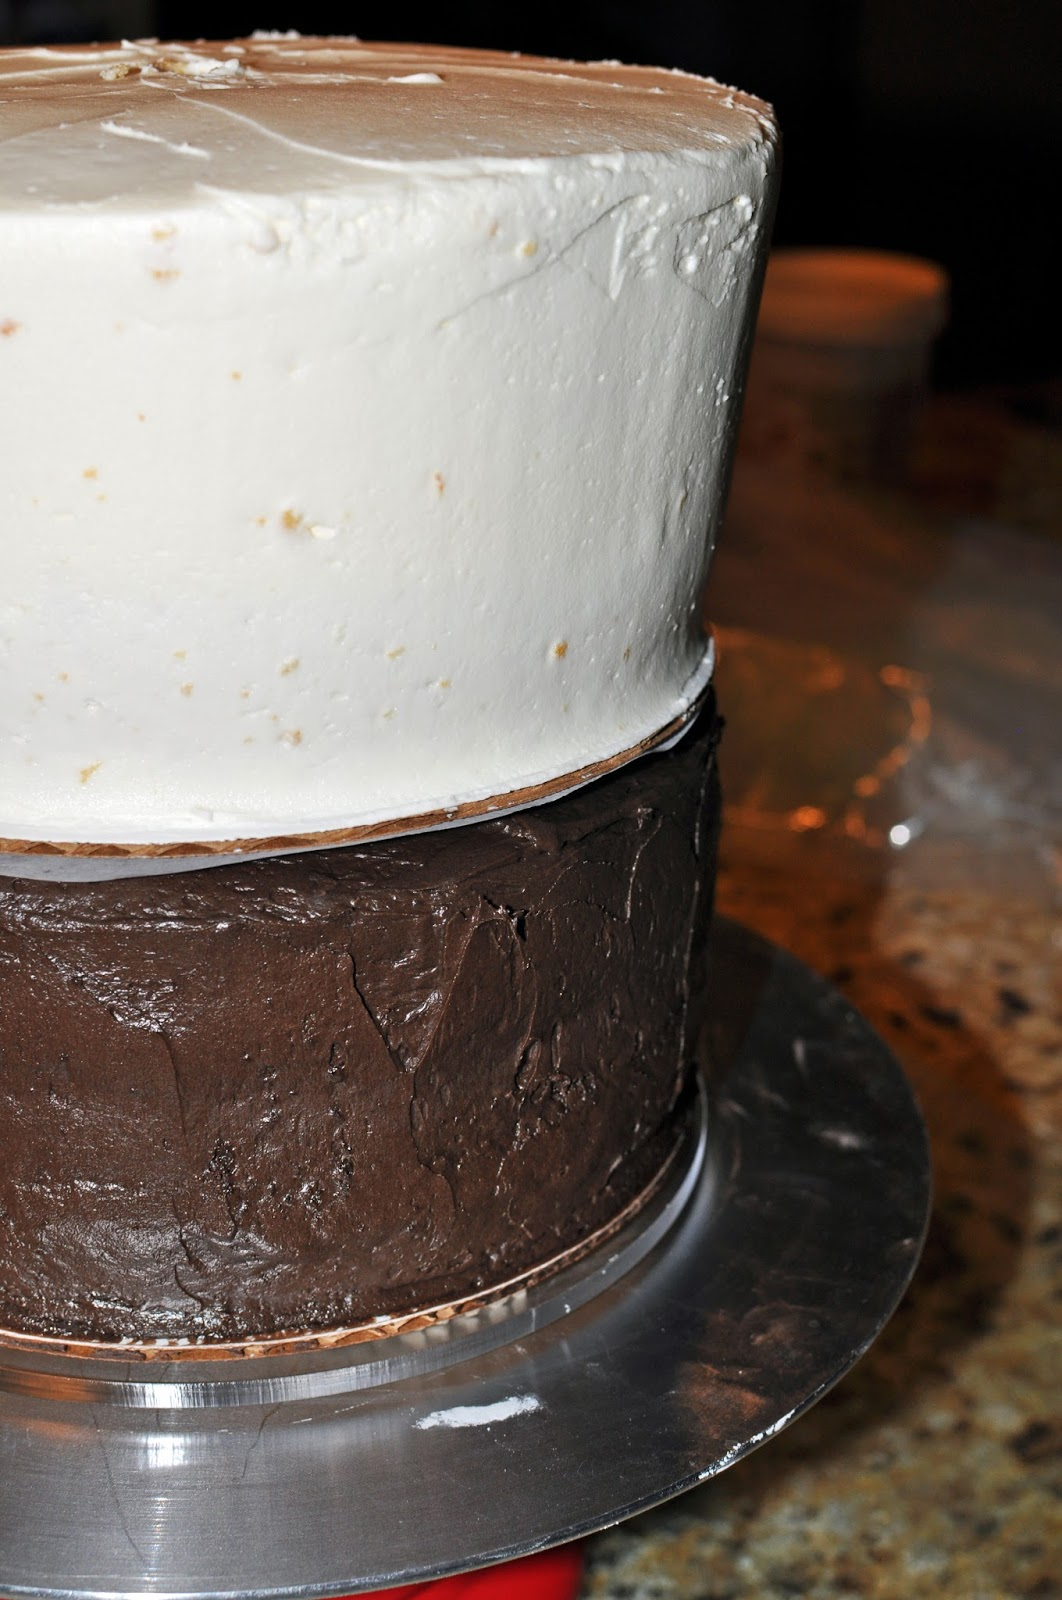 The Bake More Want Cakes With Flat Tops And Perfectly